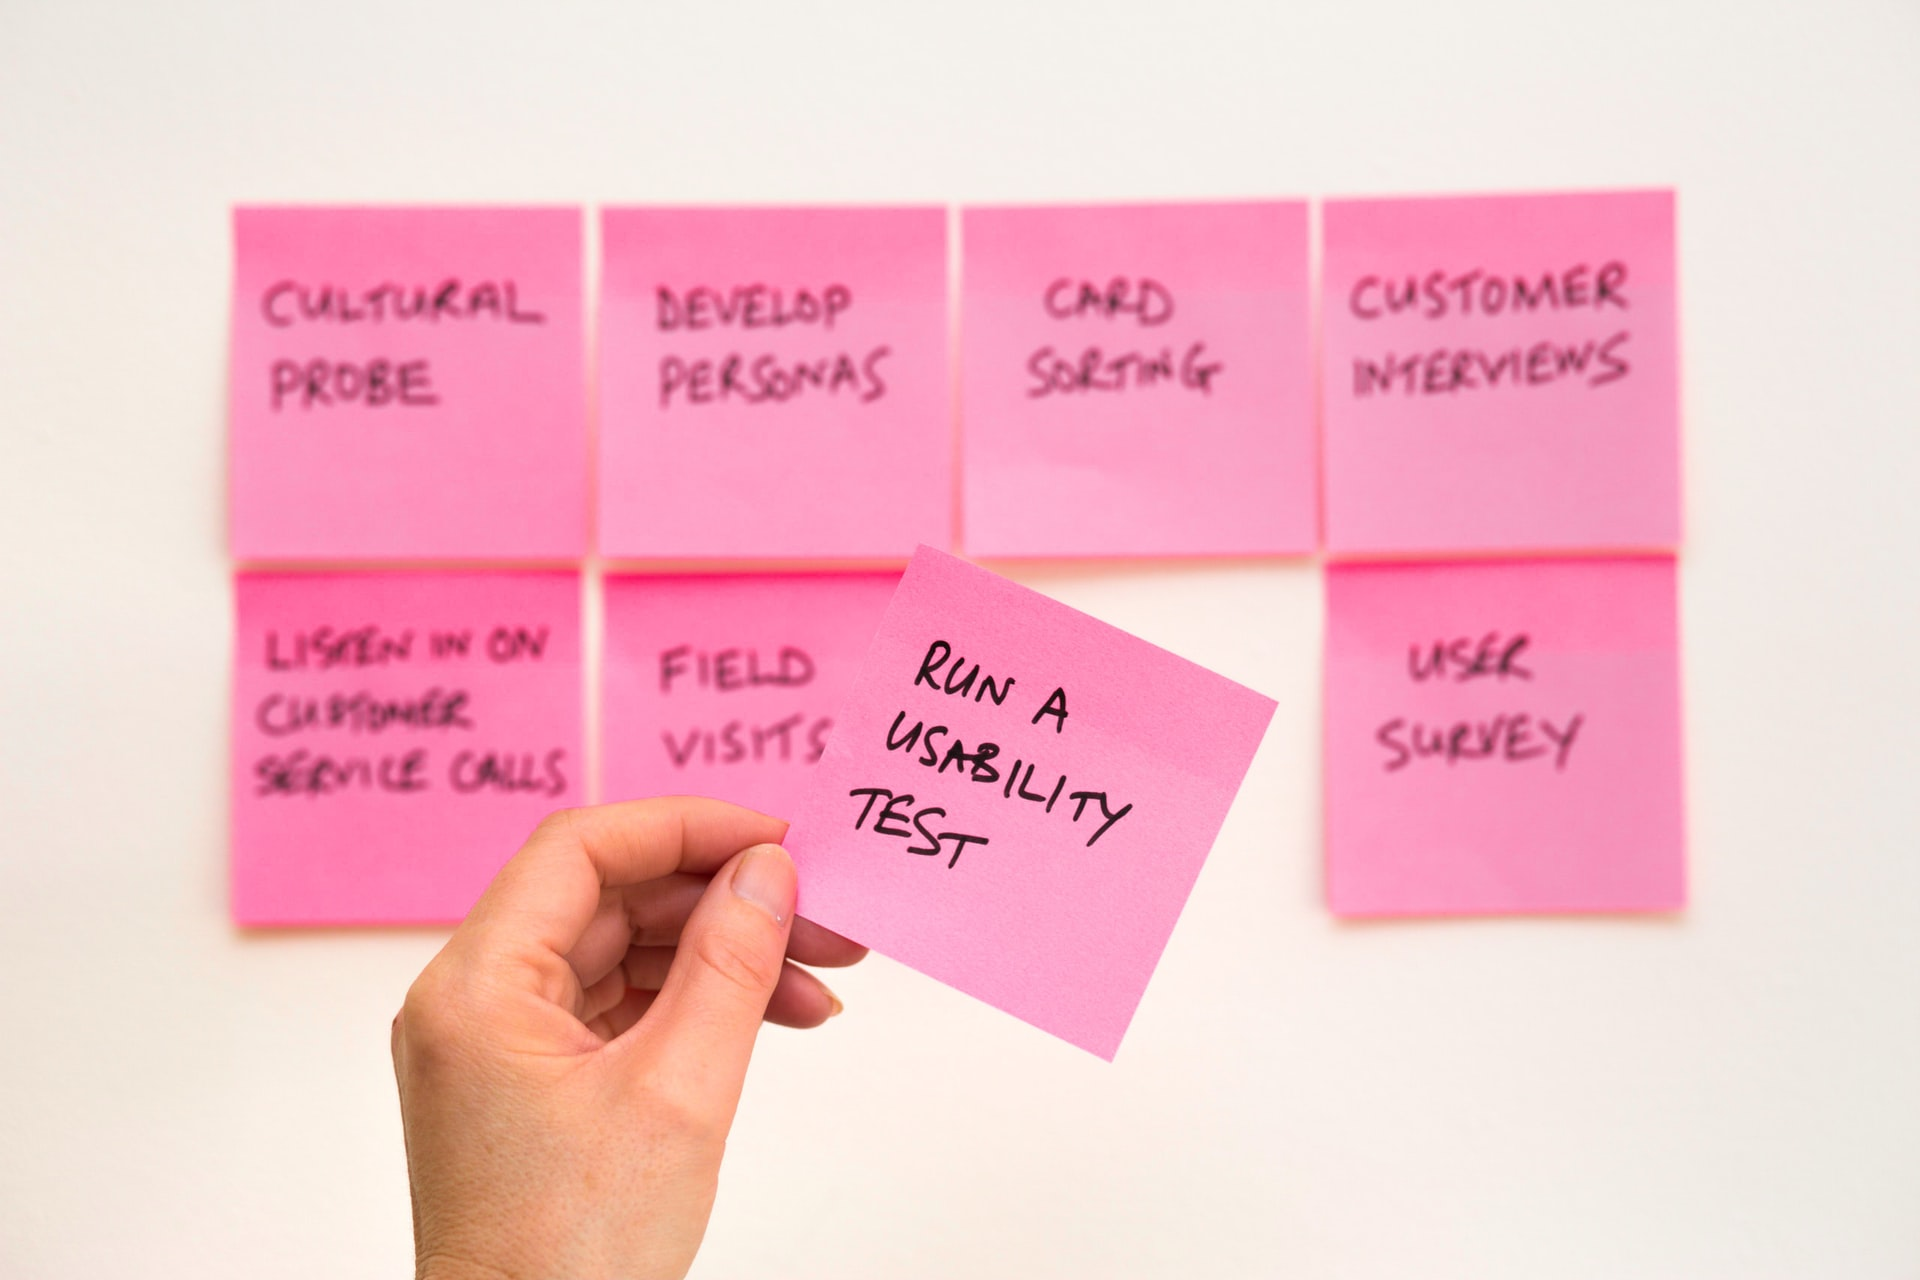 A person holding a pink sticky note.